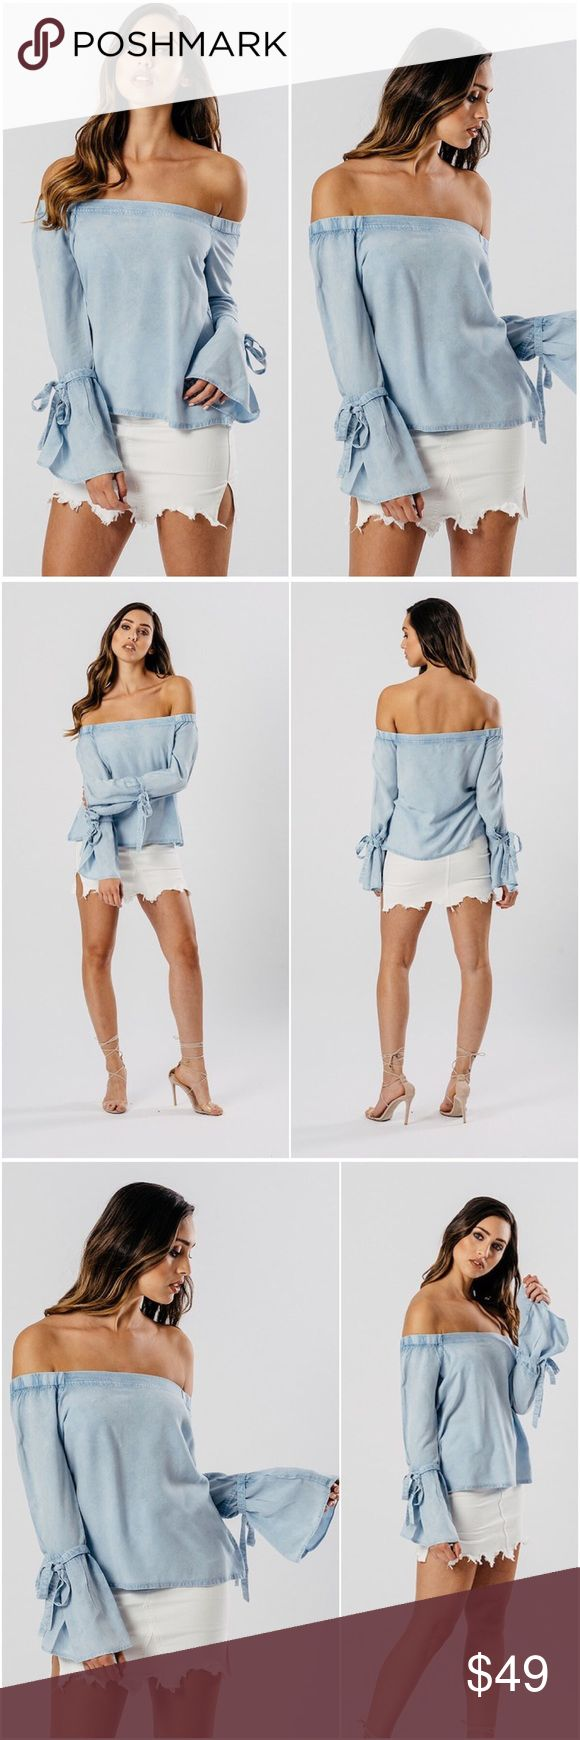 🆕Shae Light Wash Chambray Bardot Top **PLEASE NOTE THIS IS A NEWLY ADDED ITEM TO OUR SPRING/SUMMER COLLECTION AND ALL ORDERS SHIP WITHIN 3-5 BUSINESS DAYS**  Sweet ties adorn the sleeves of this breezy, off the shoulder top made with a light-wash chambray.  Viscose Fabric Construction Off The Shoulder Fit  Multiple sizes available - Limited quantity A Mermaid's Epiphany Tops Blouses